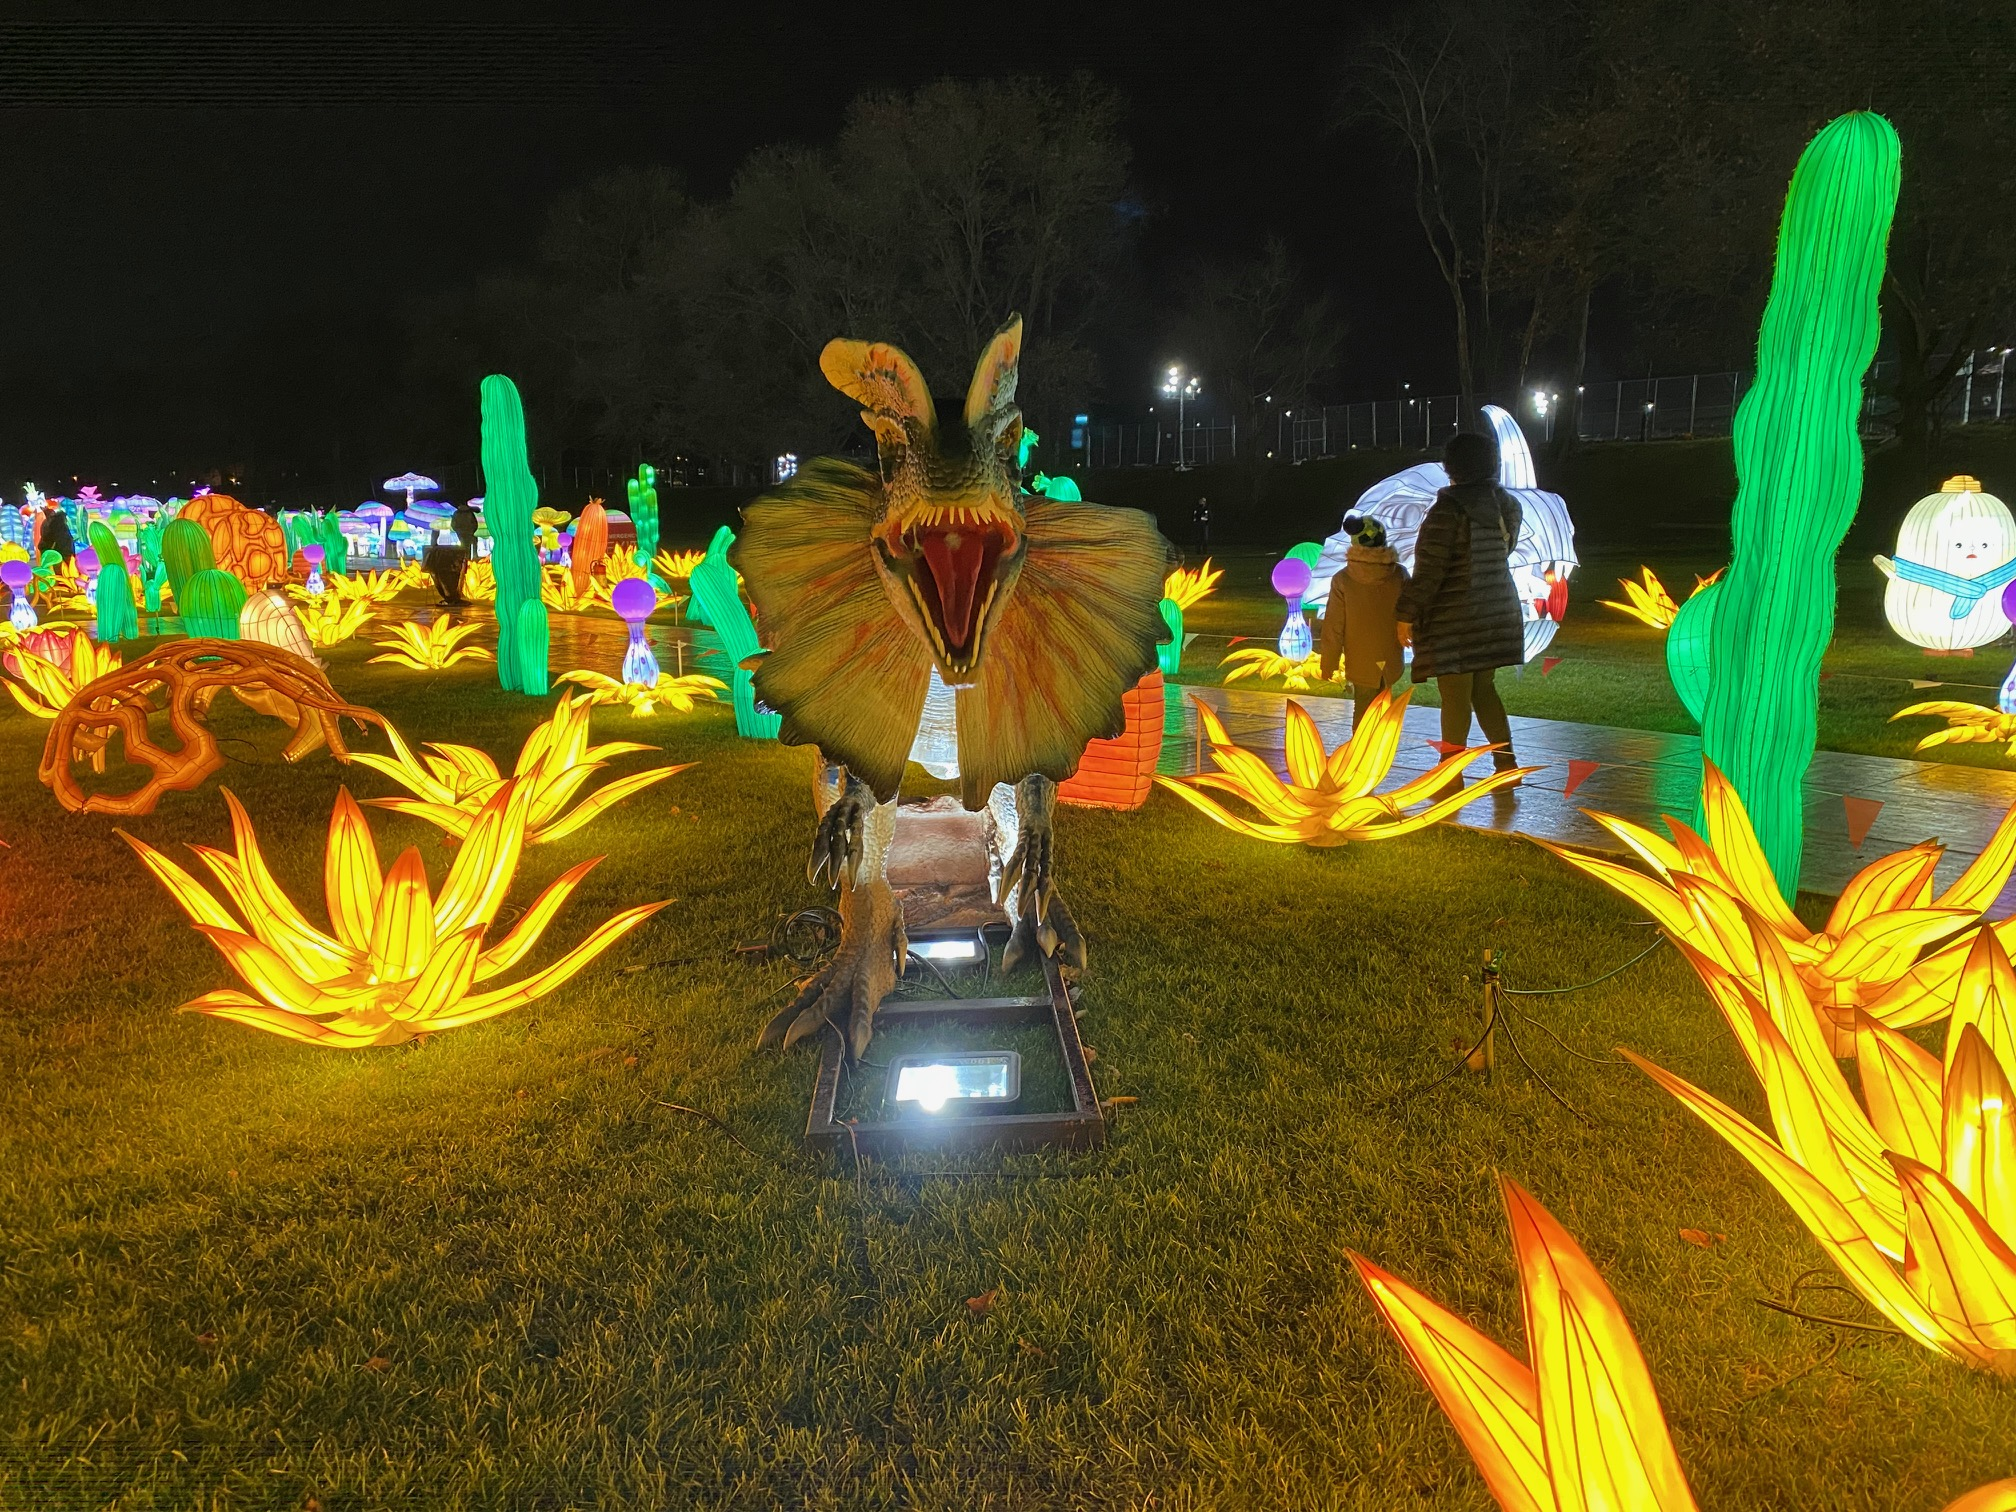 Enter the Magical World of the LuminoCity Festival dinosaurs